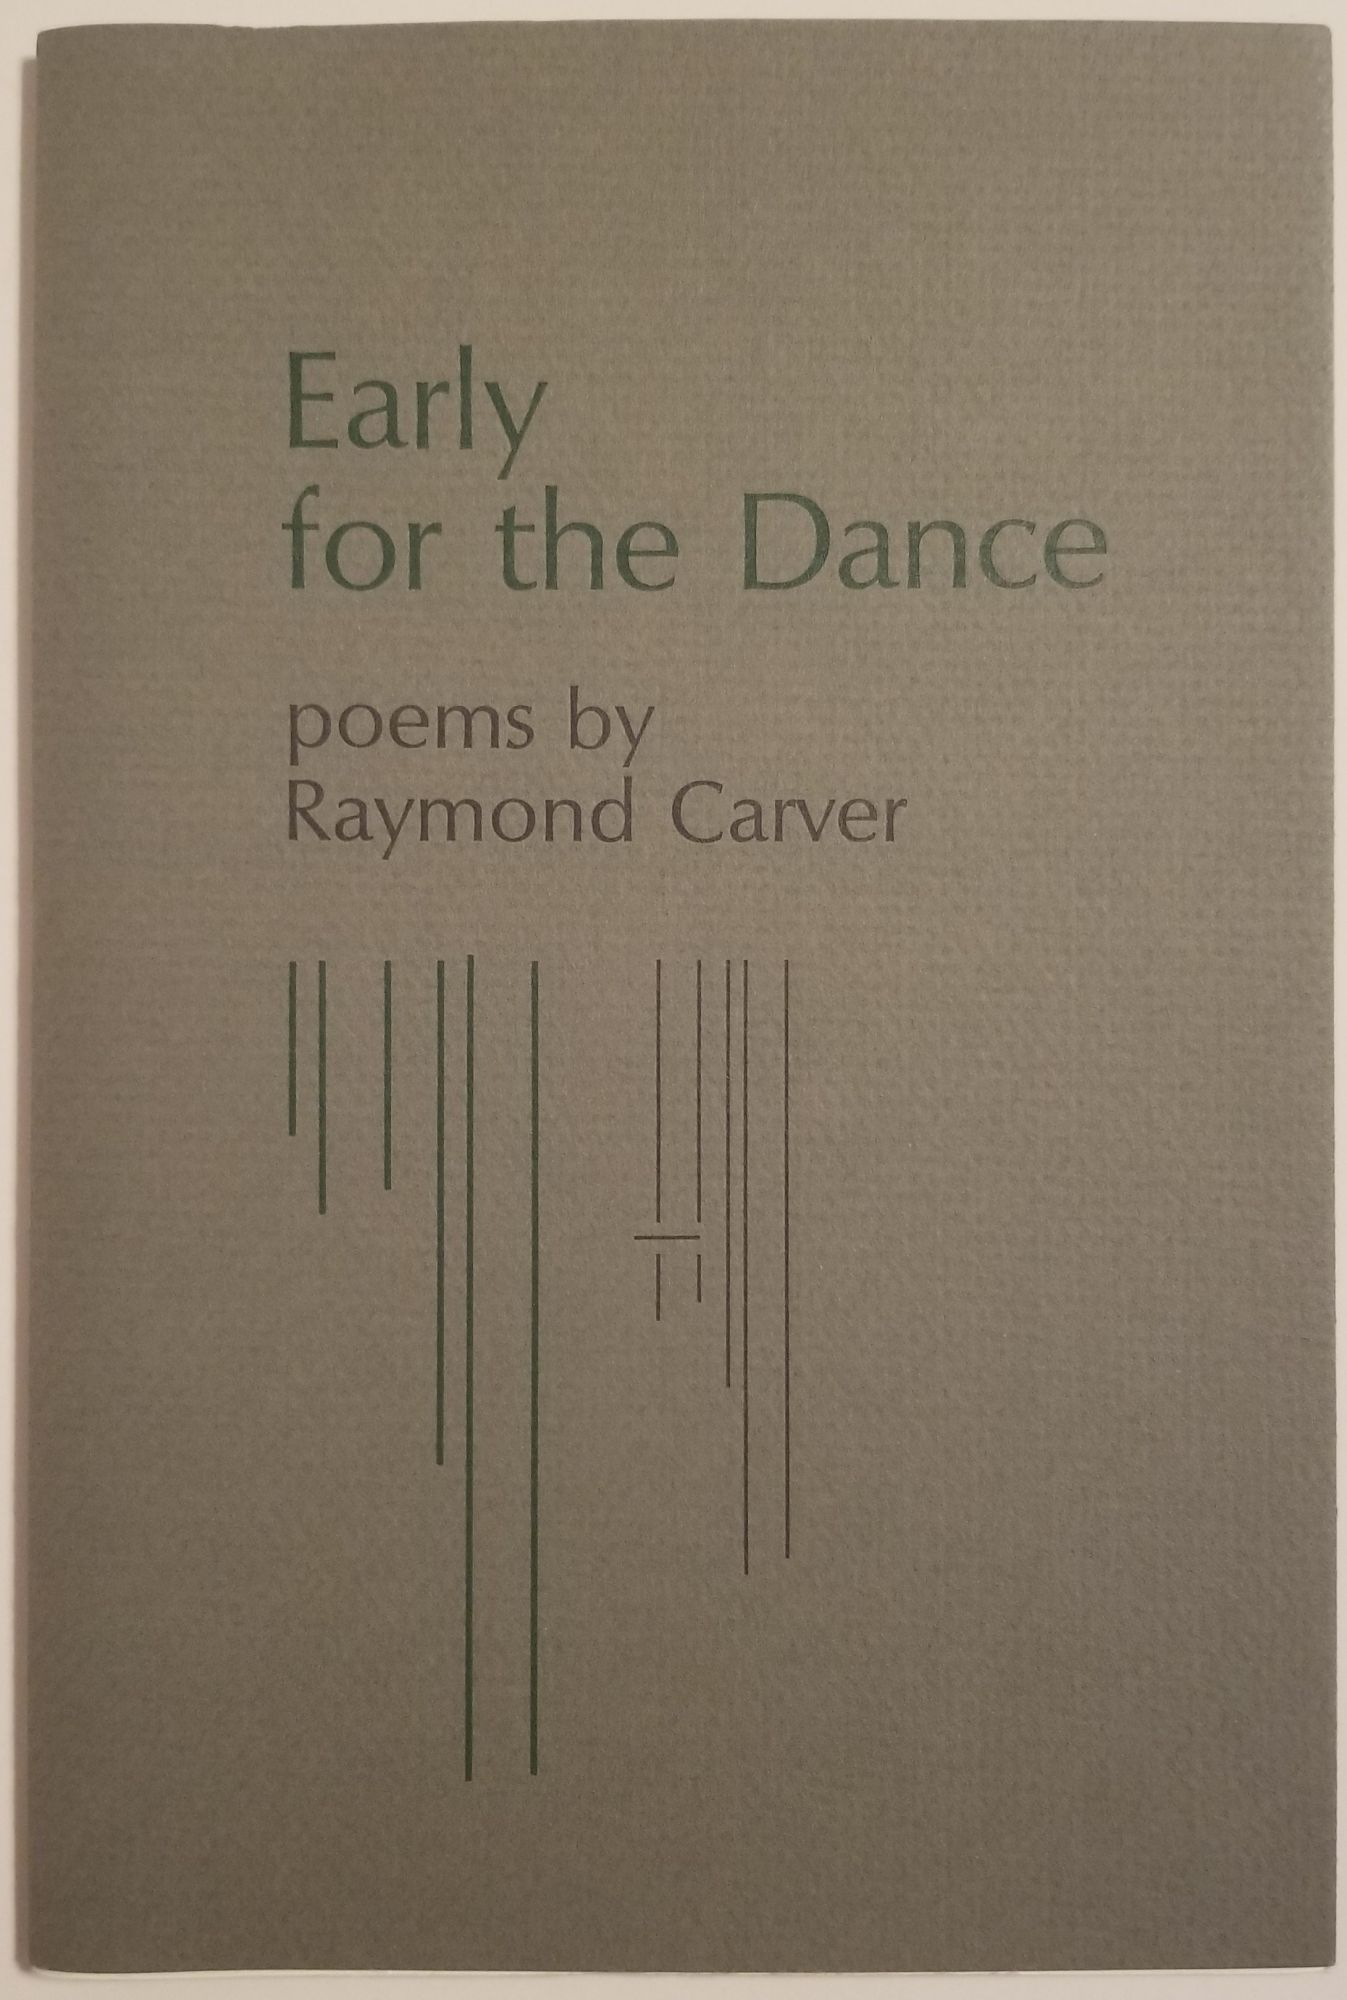 EARLY FOR THE DANCE. Raymond Carver.